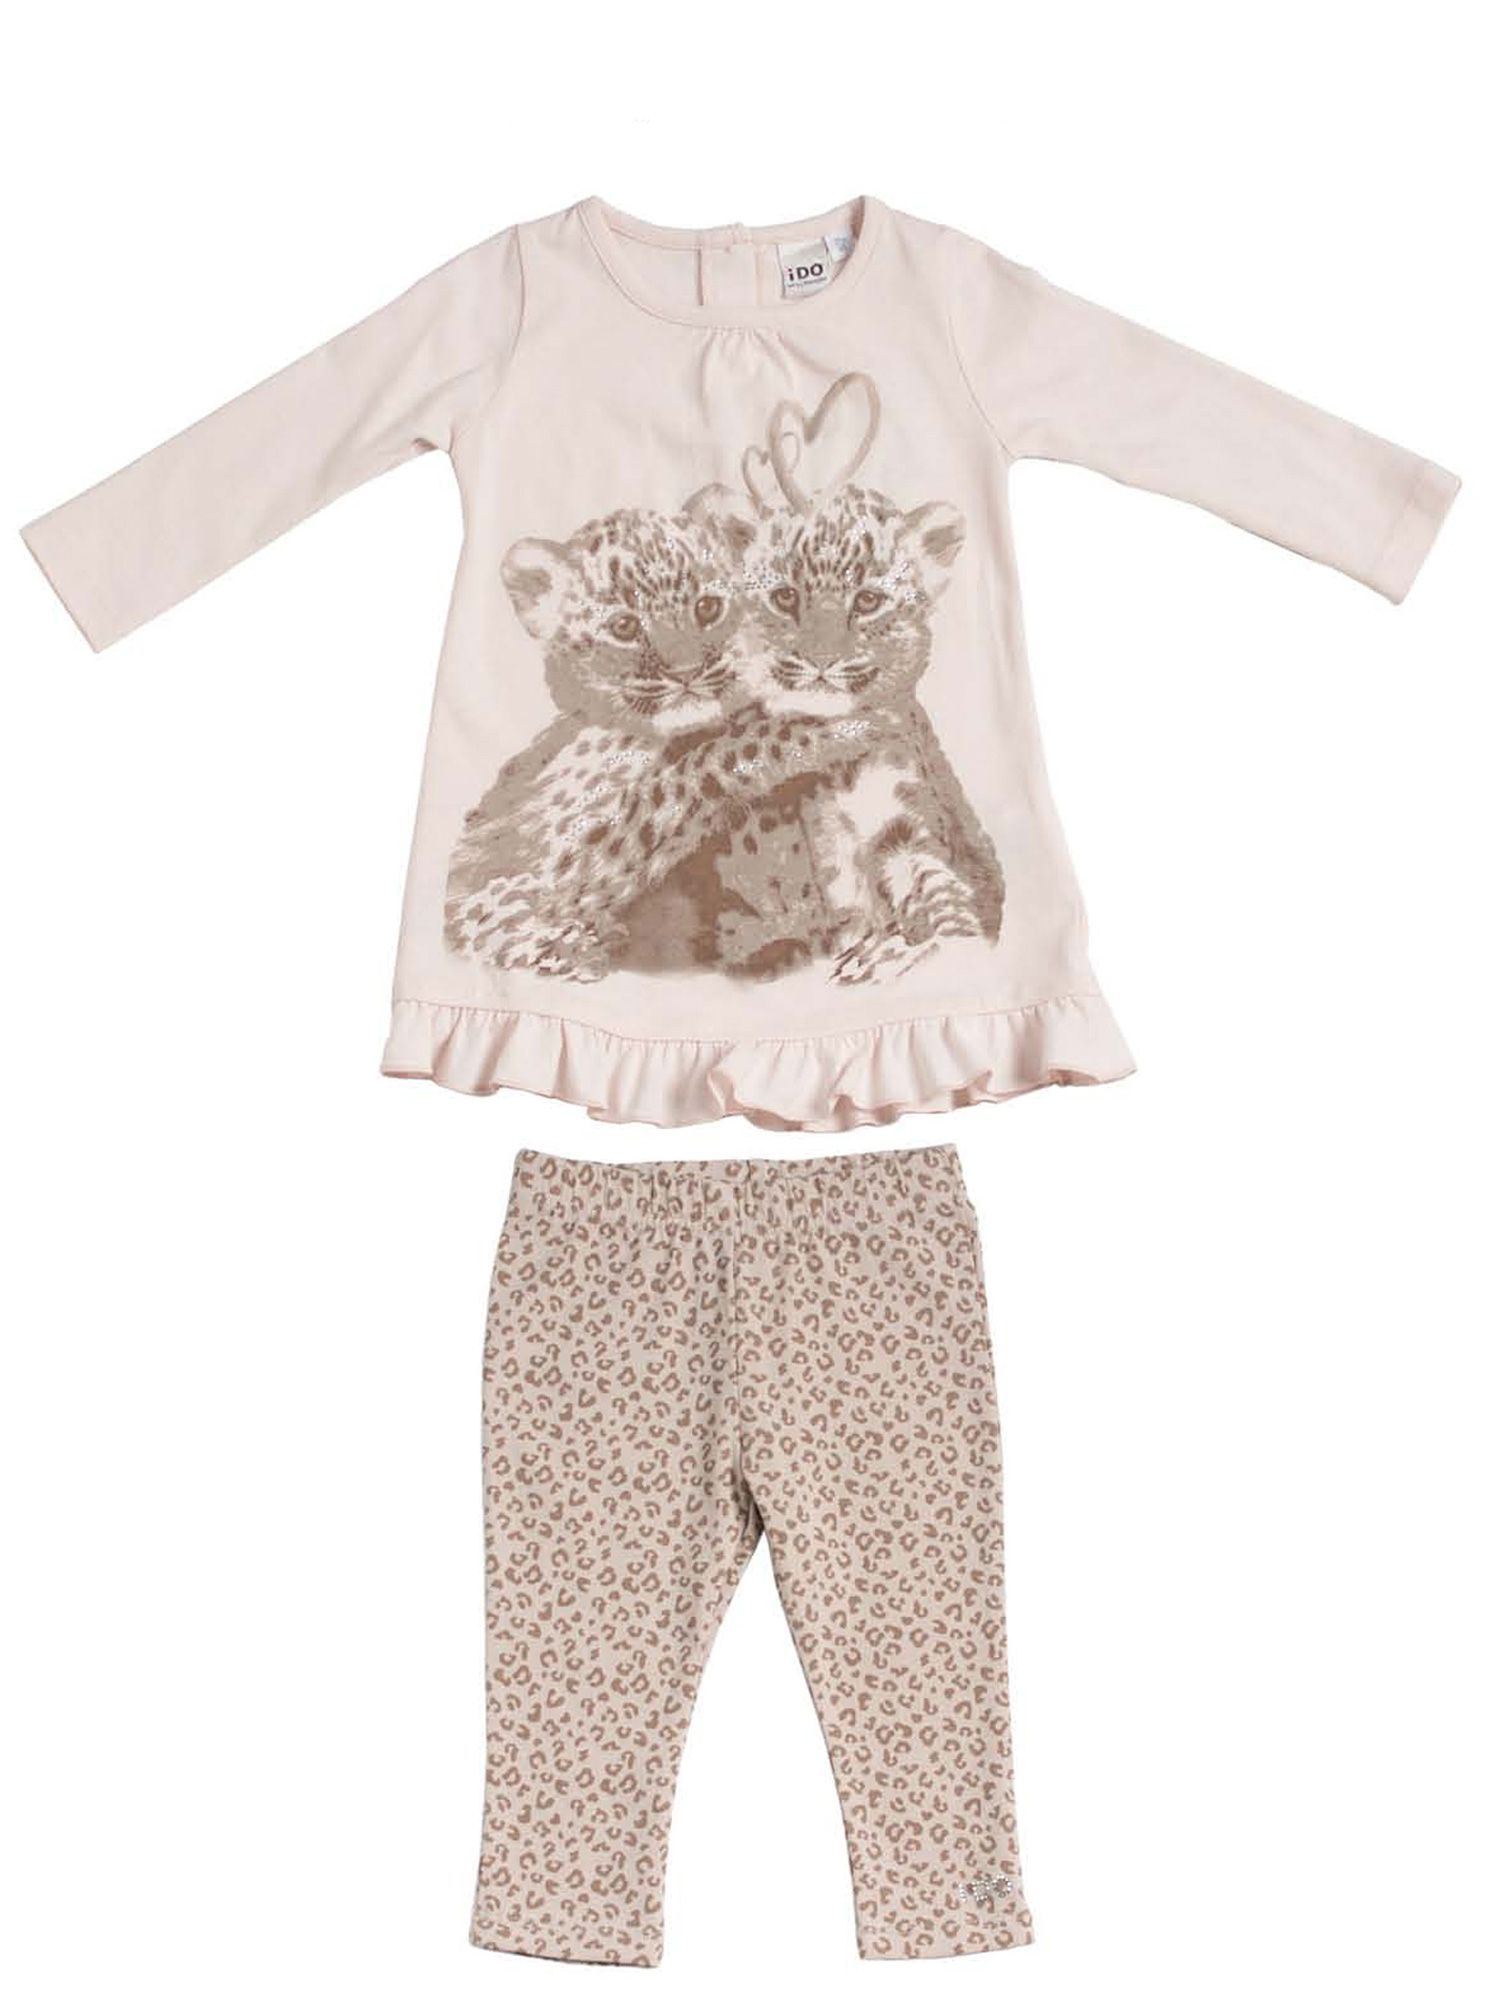 Girls camouflage top and leggings set